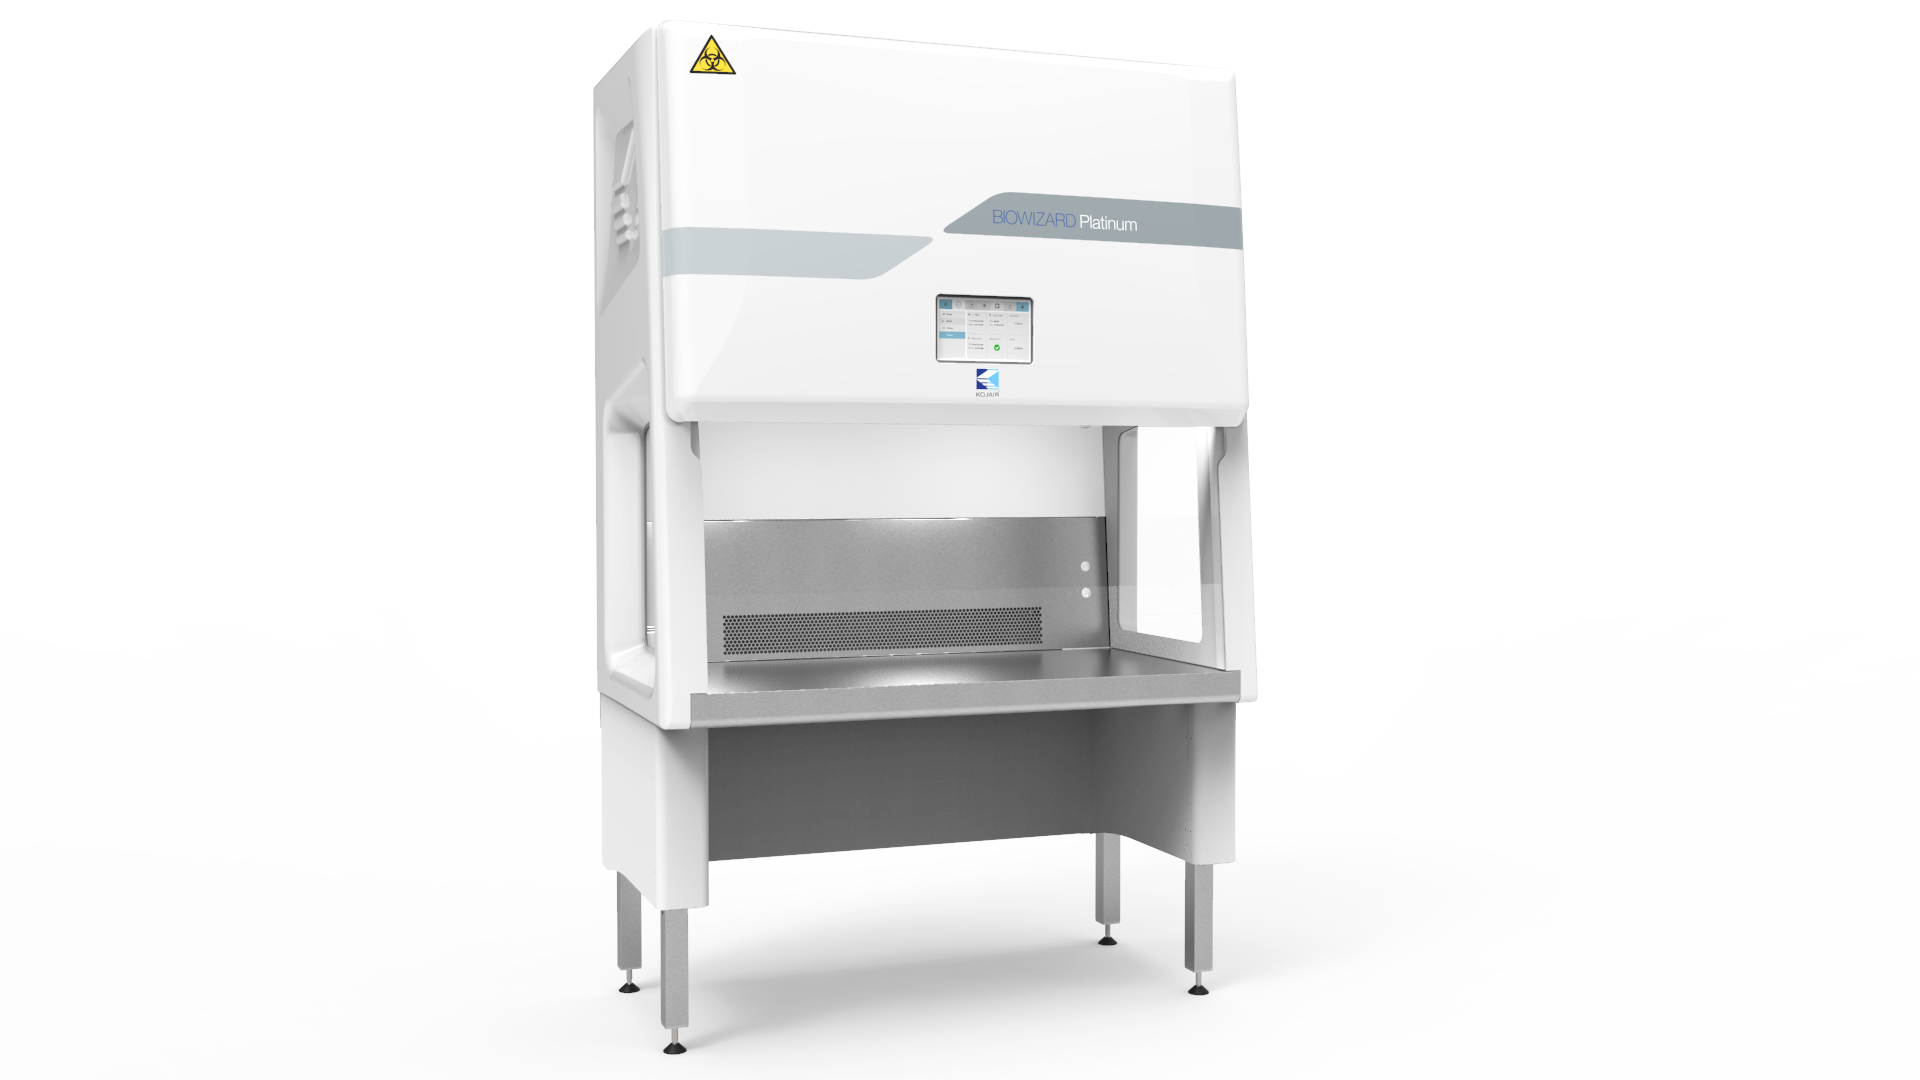 Open laminar flow cabinet CleanWizard Platinum